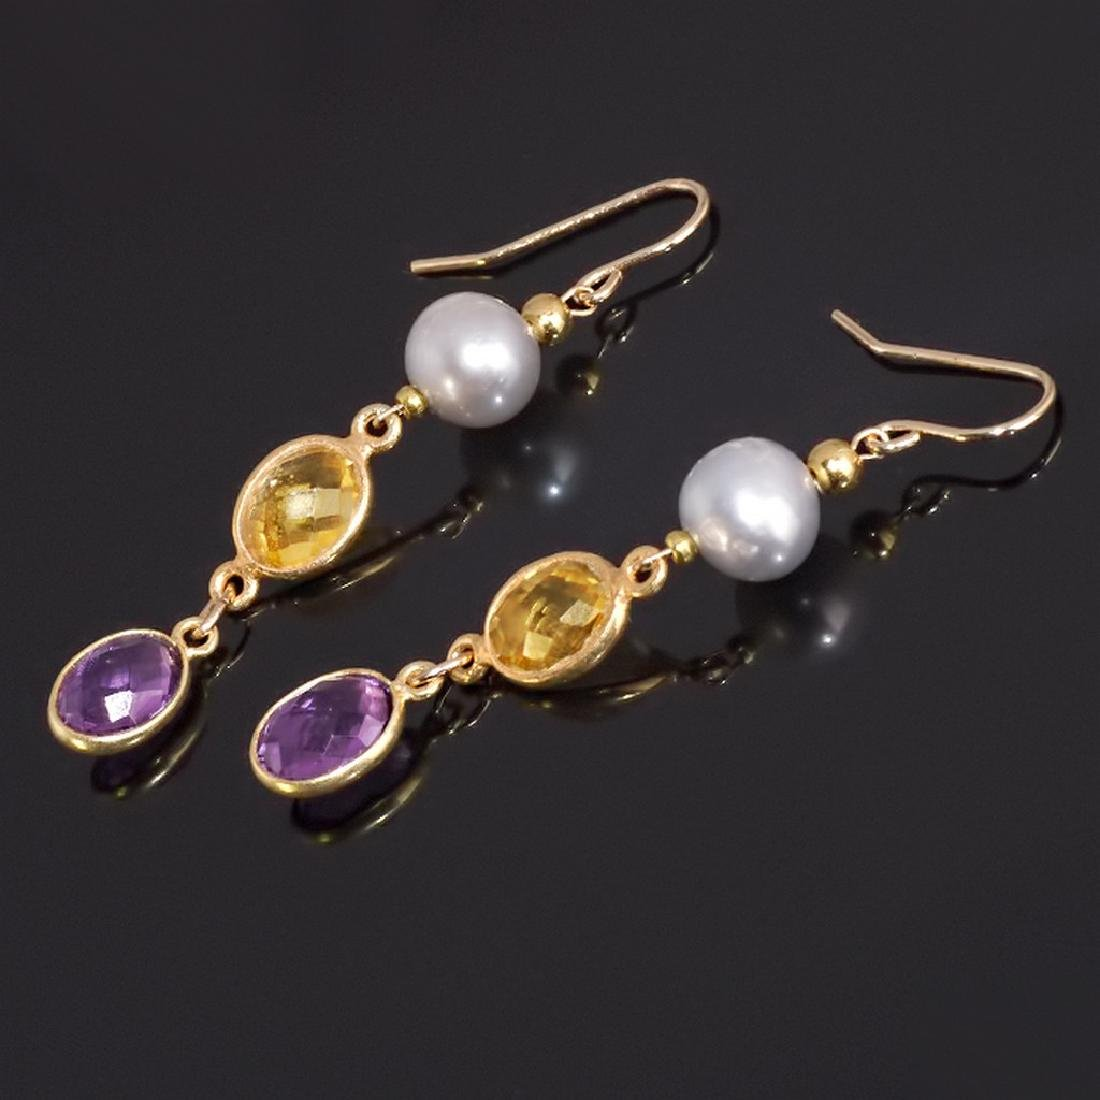 14K Multicolor Earrings with Pearls, Champagne Citrine